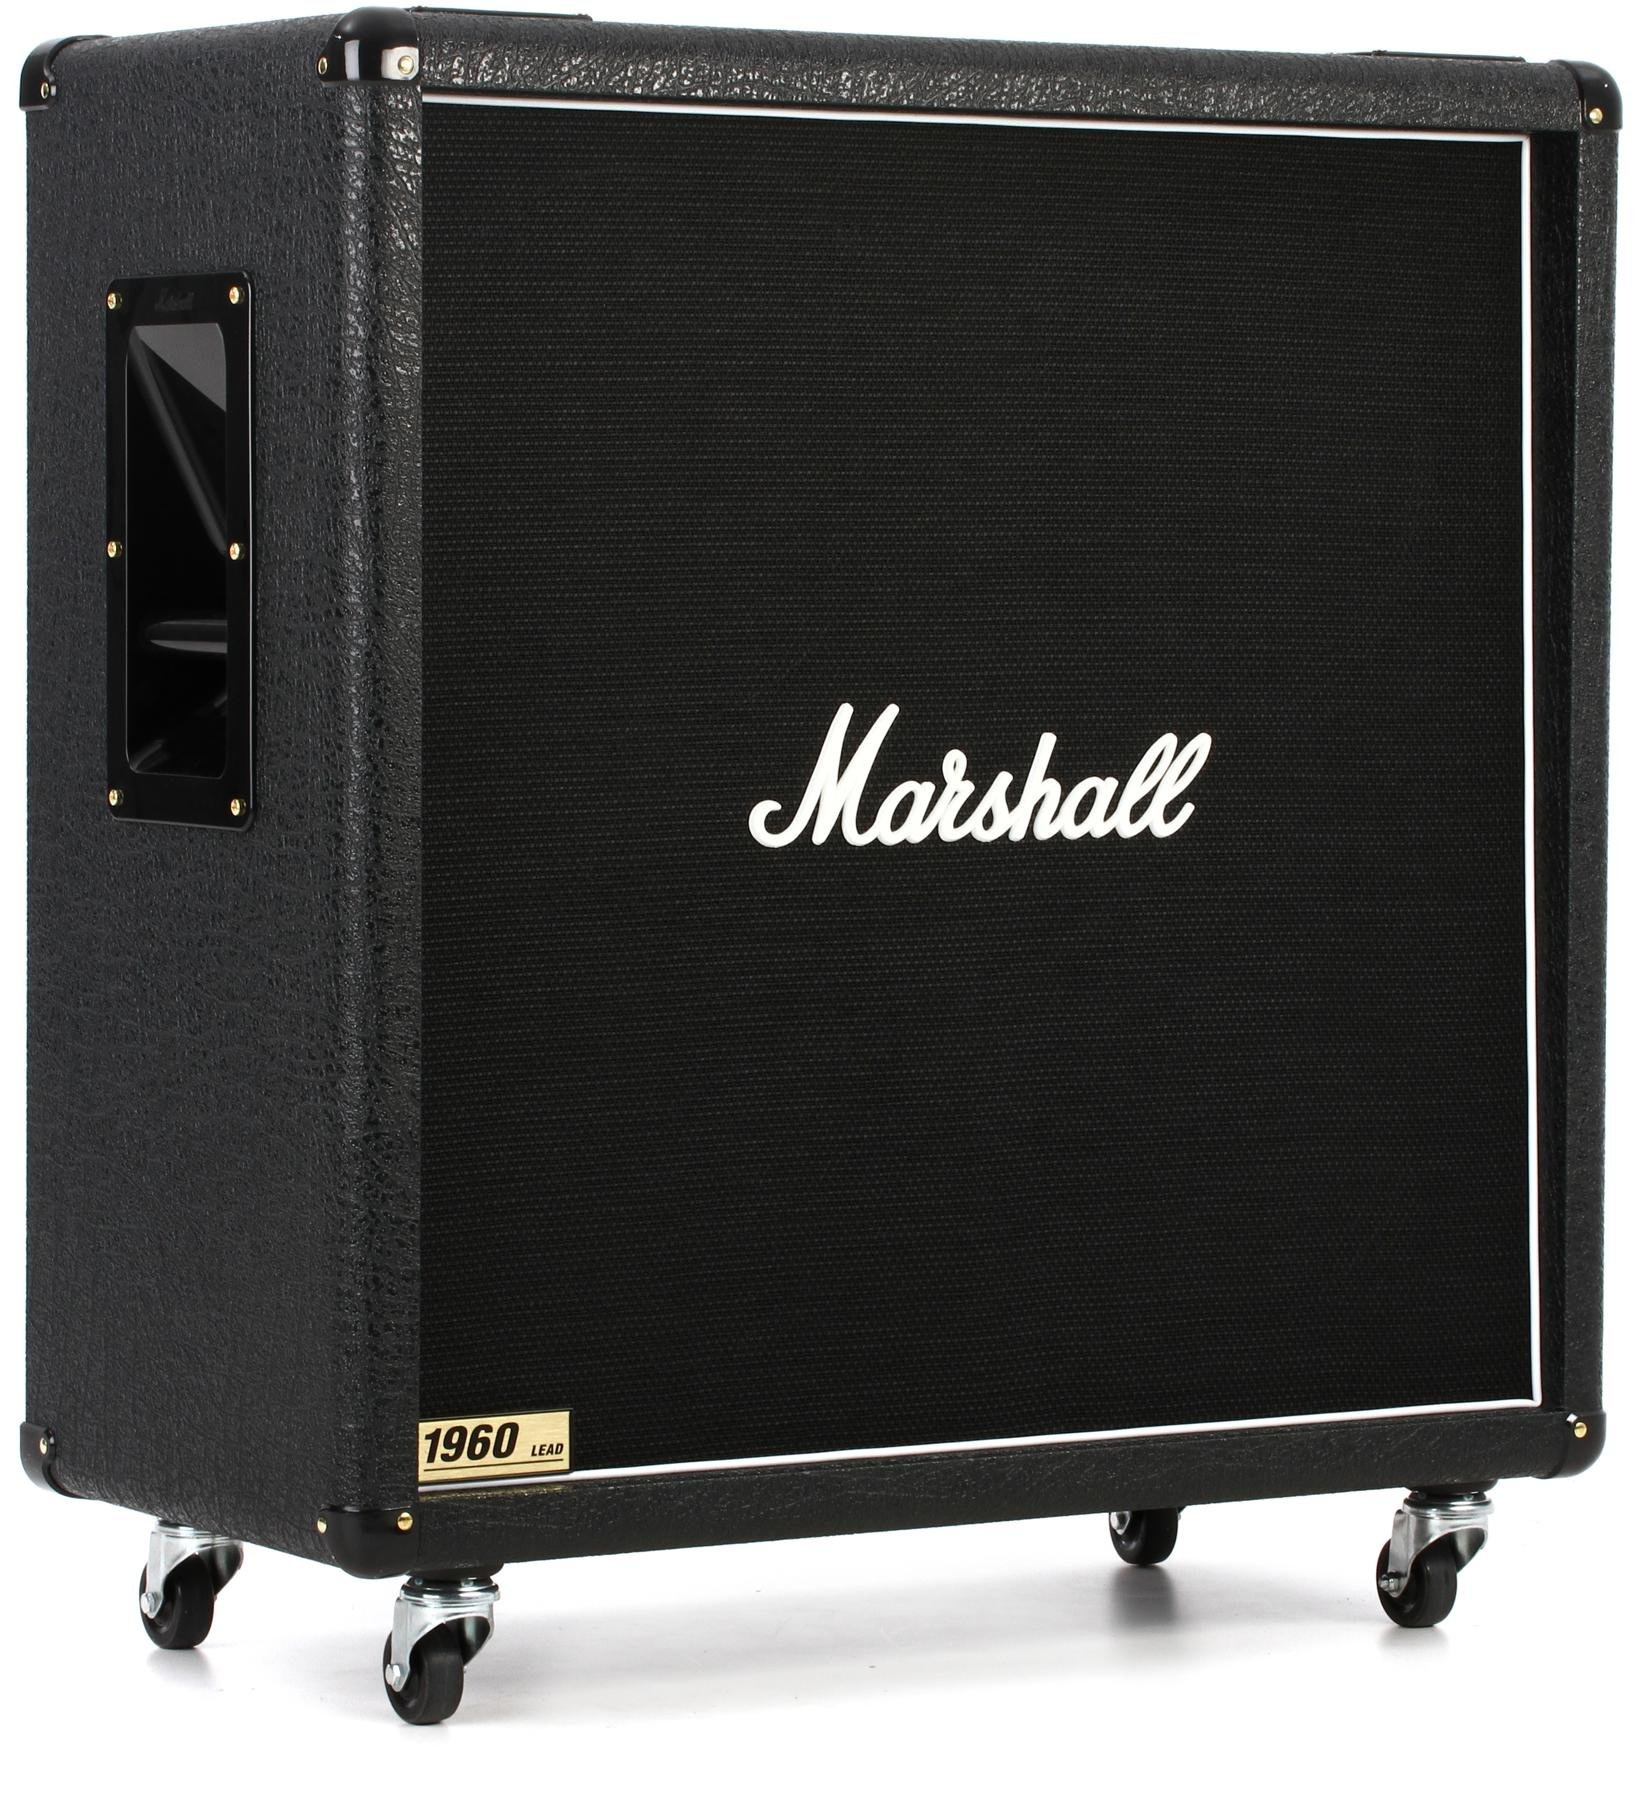 Marshall 1960a Cab Manual Car Owners Wiring Diagram 1960b 300 Watt 4x12 Straight Extension Cabinet Sweetwater Rh Com Schematic